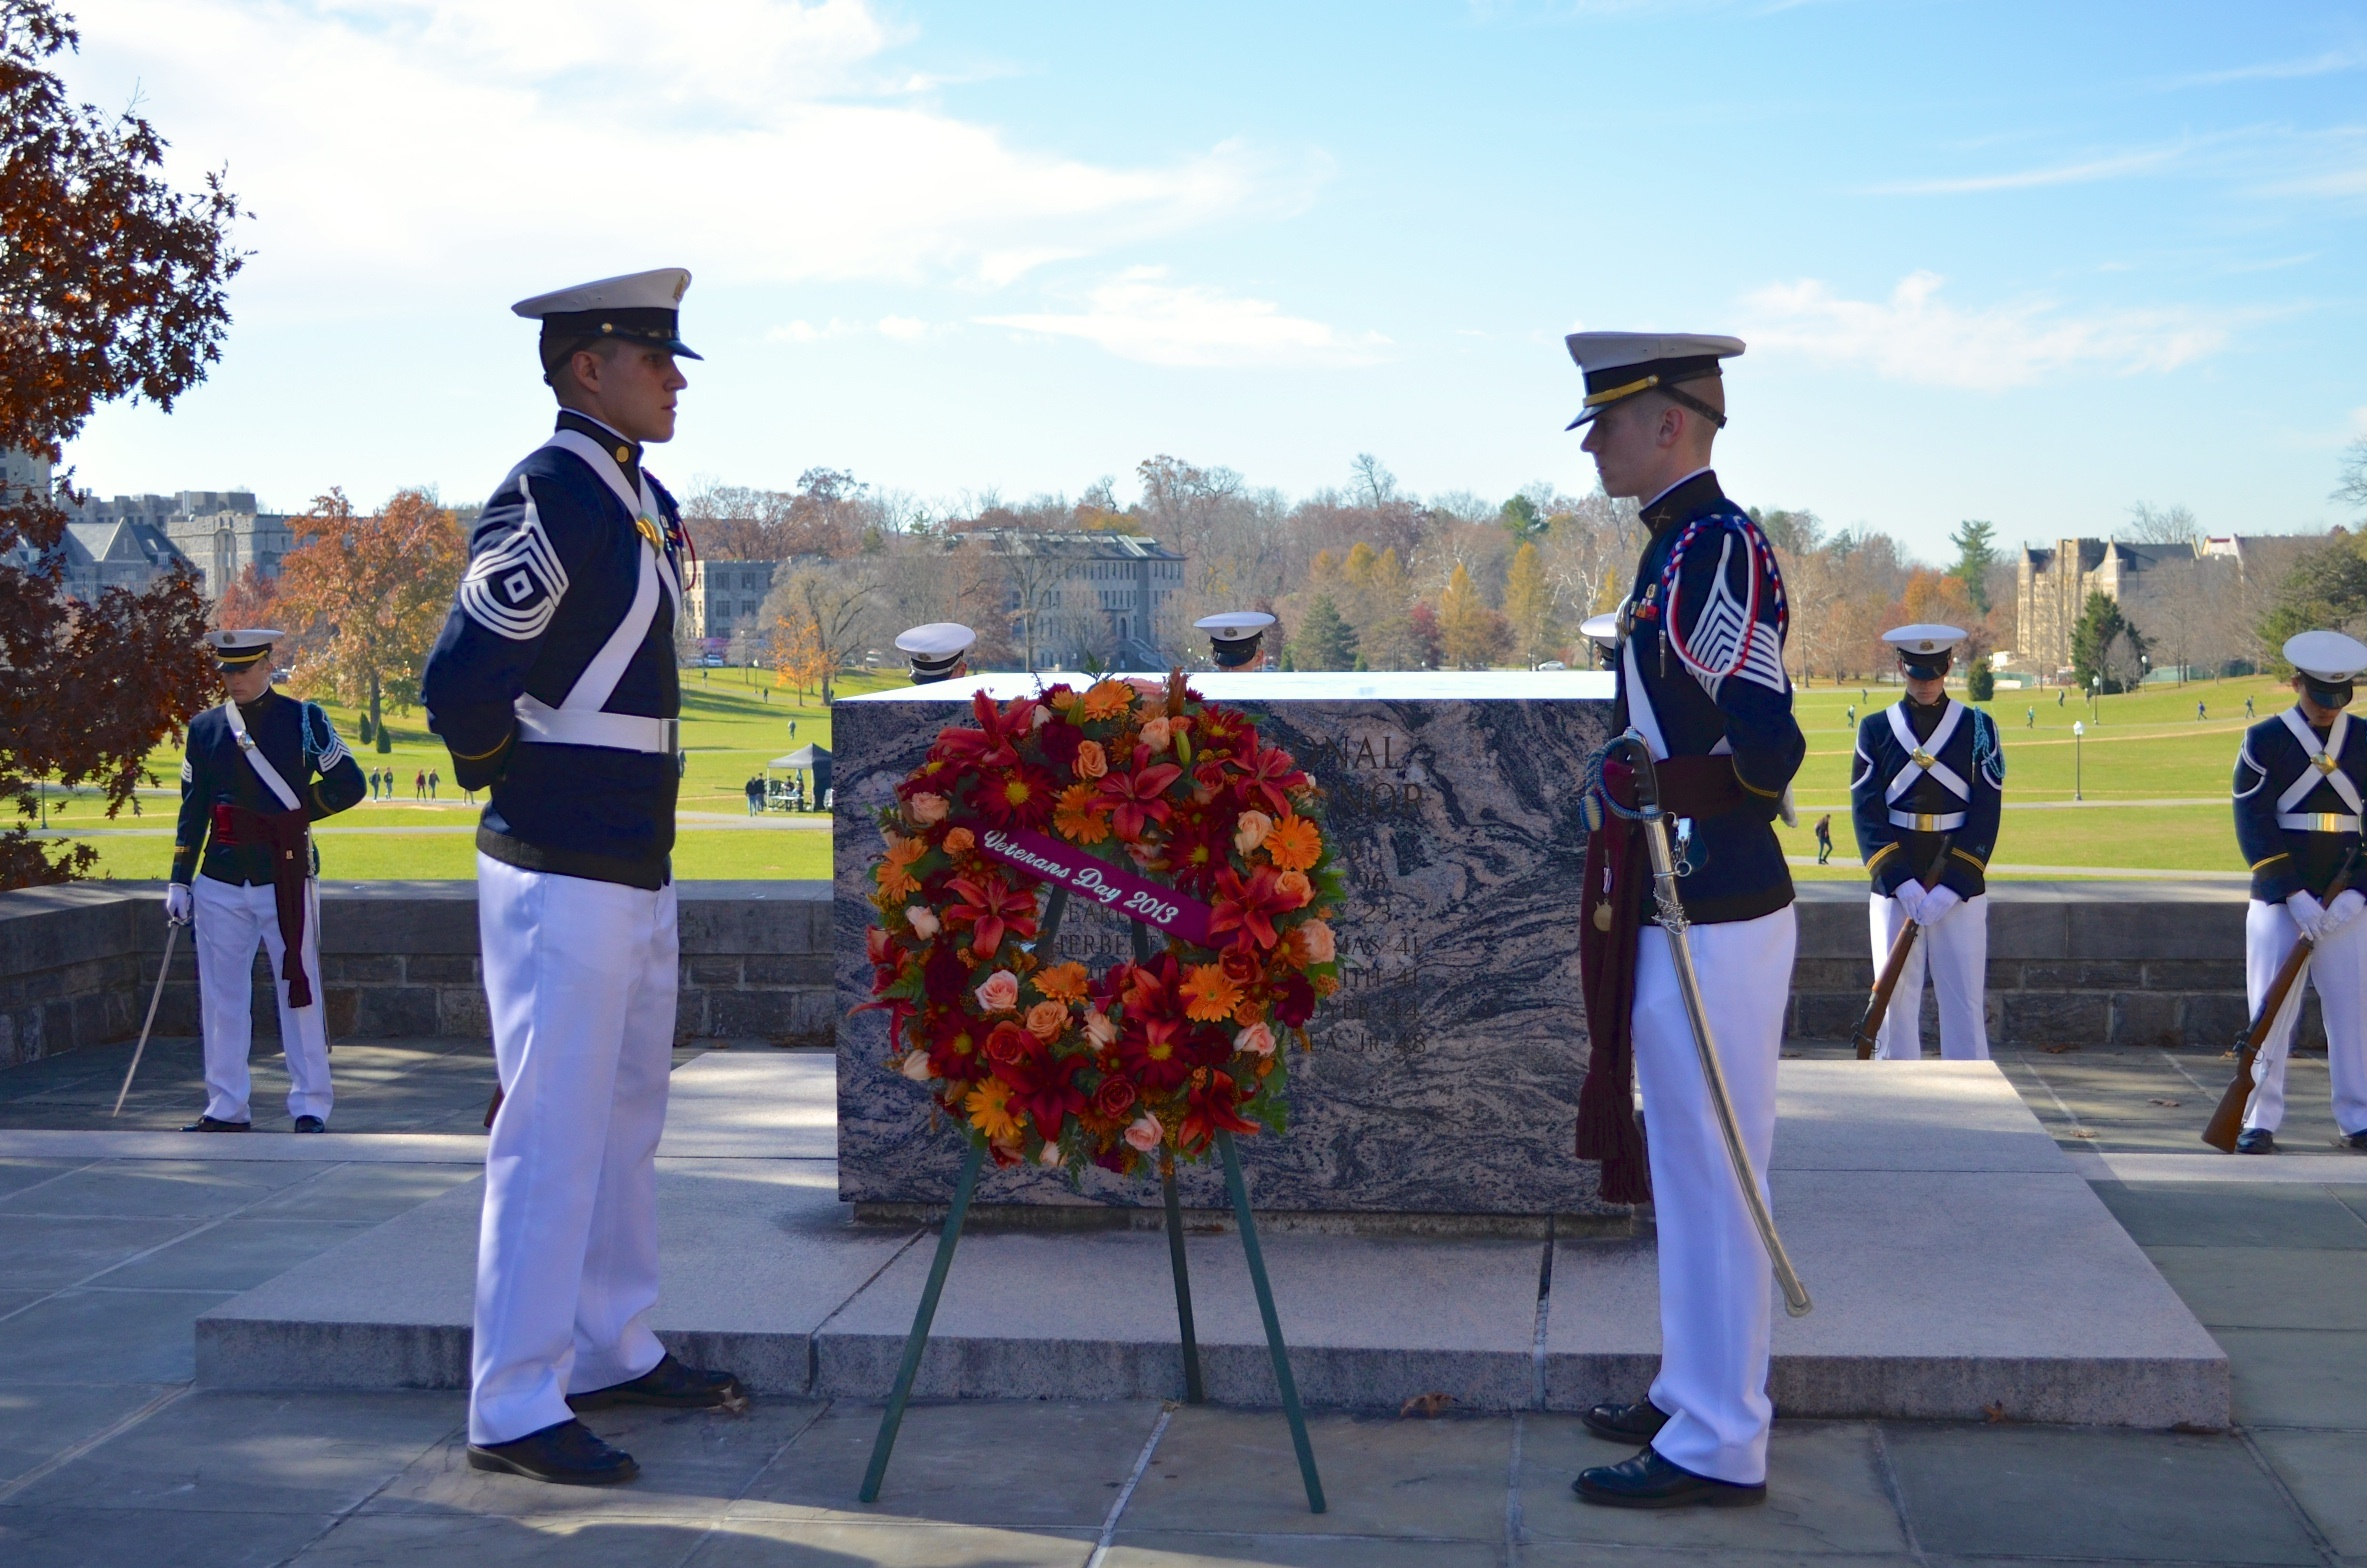 Presentation of the memorial wreath at Veterans Day Ceremony in November 2013 at the Pylons.